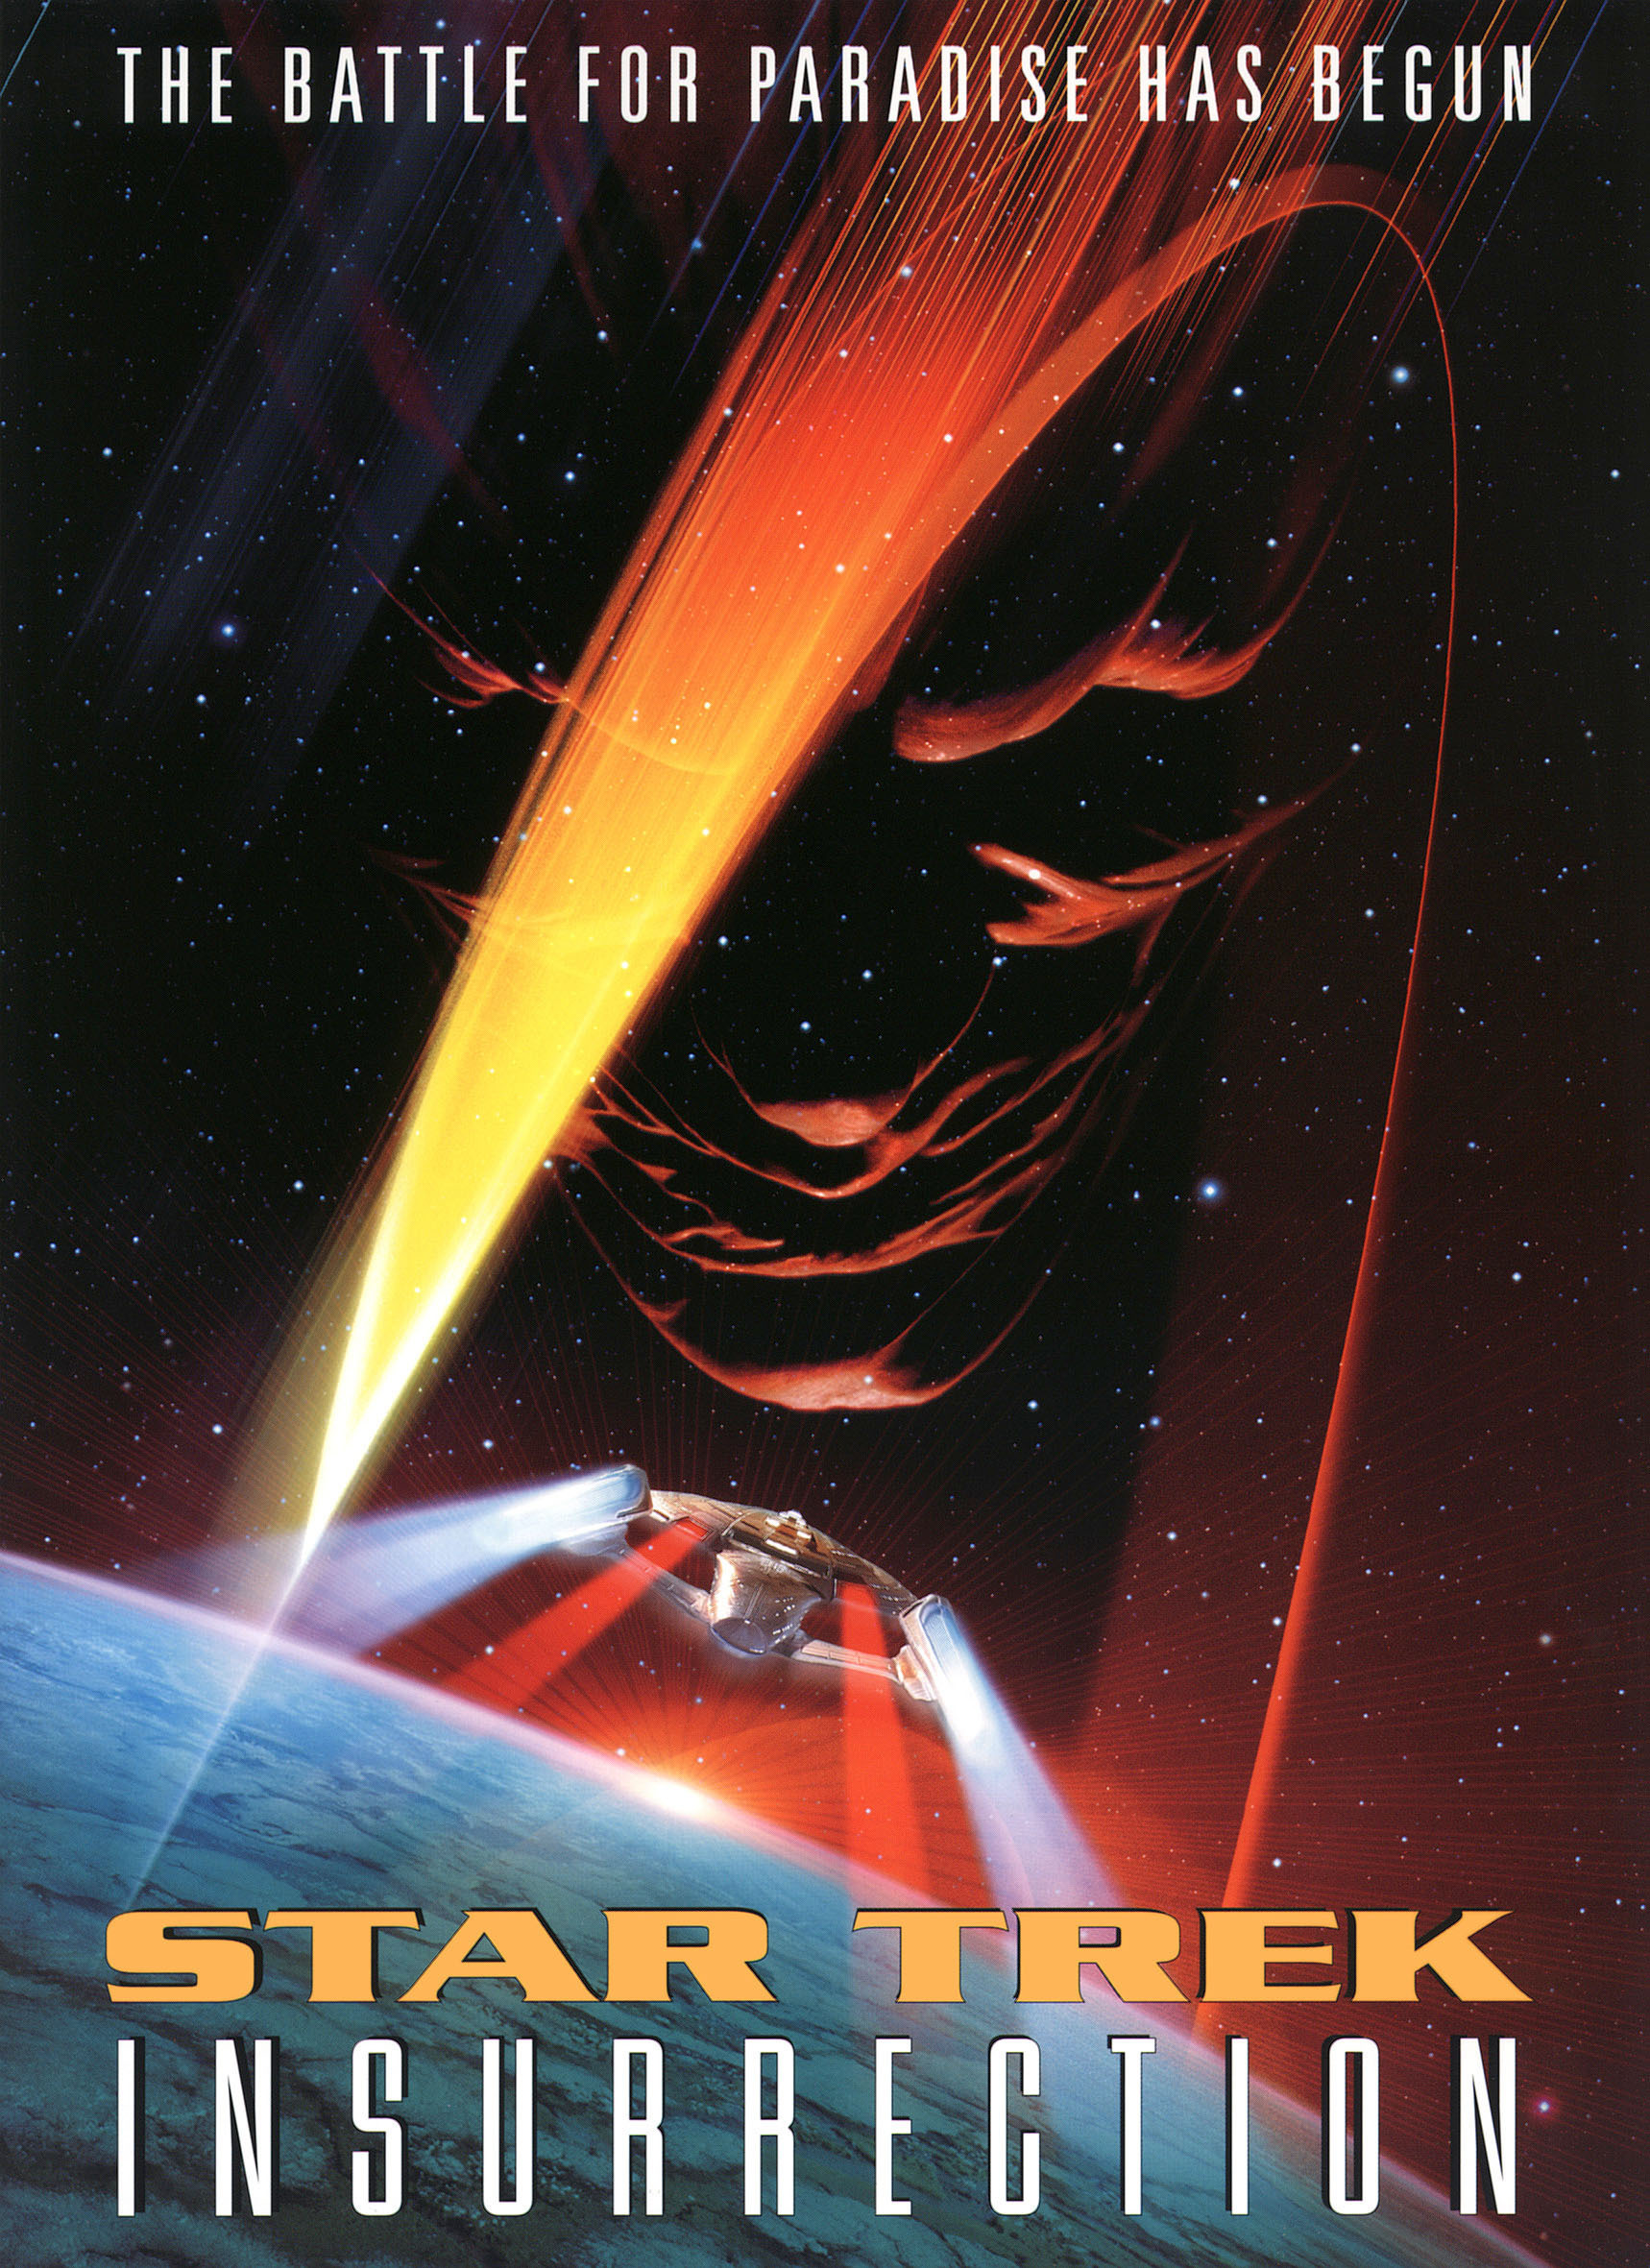 Star Trek Movies Images IX Insurrection Poster HD Wallpaper And Background Photos